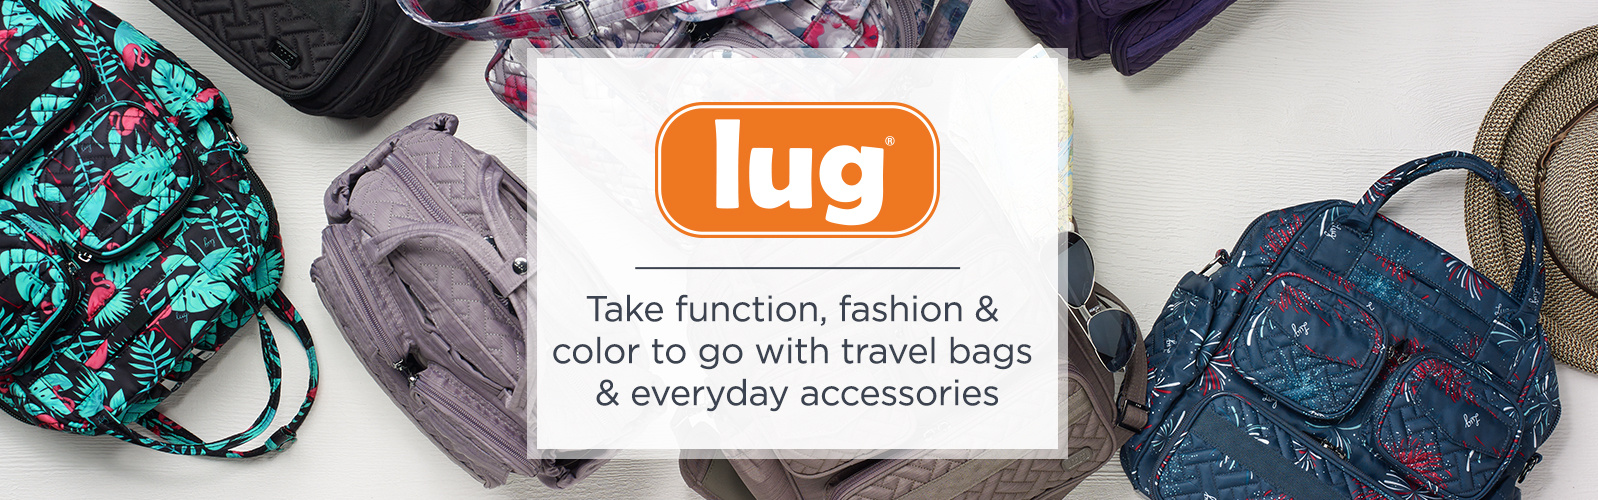 Lug Travel Bags for Women — Handbags   Luggage — QVC.com e713b2d5e6a6f